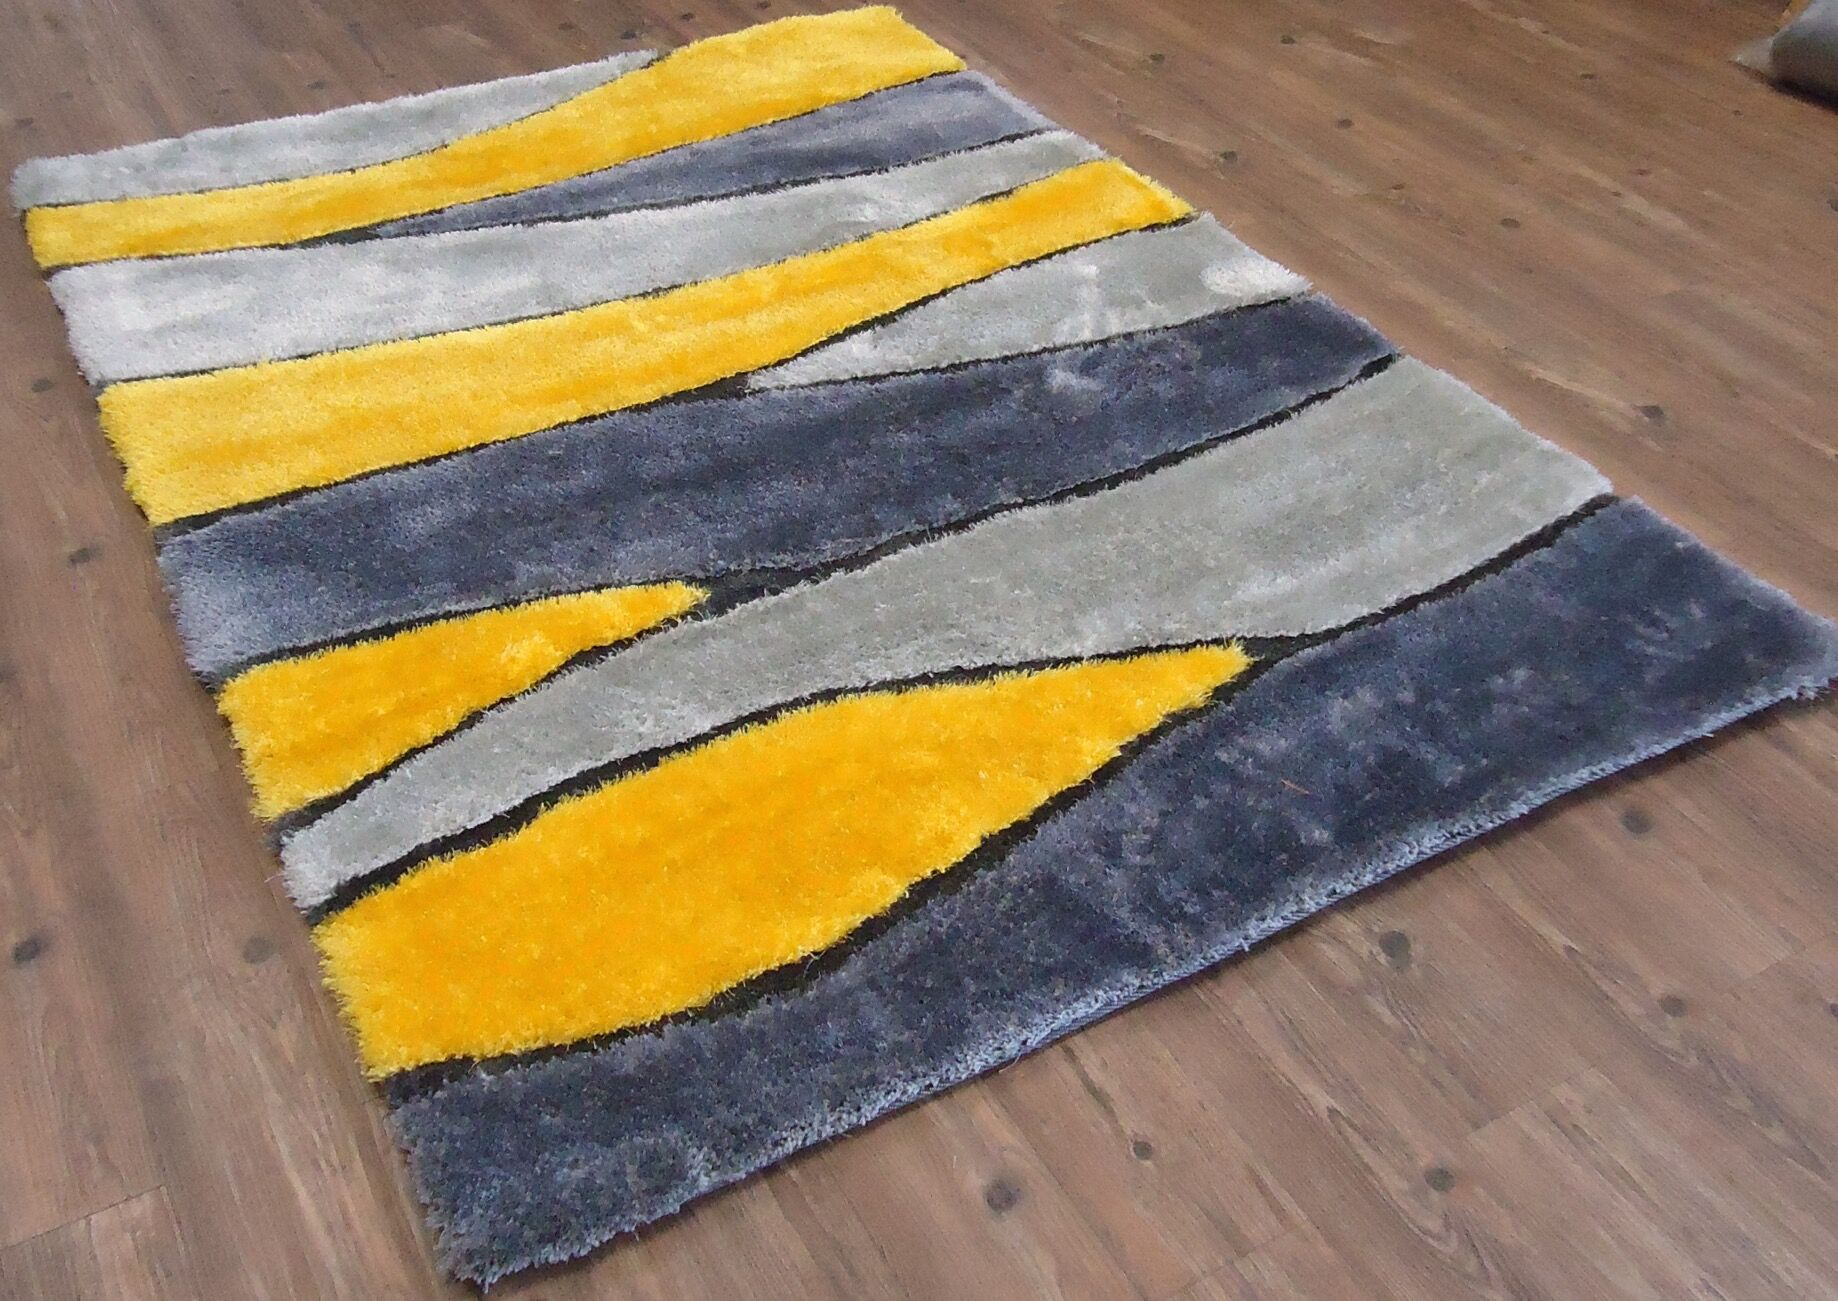 Clayburn Hand-Tufted Yellow Area Rug Rug Size: Rectangle 7'6